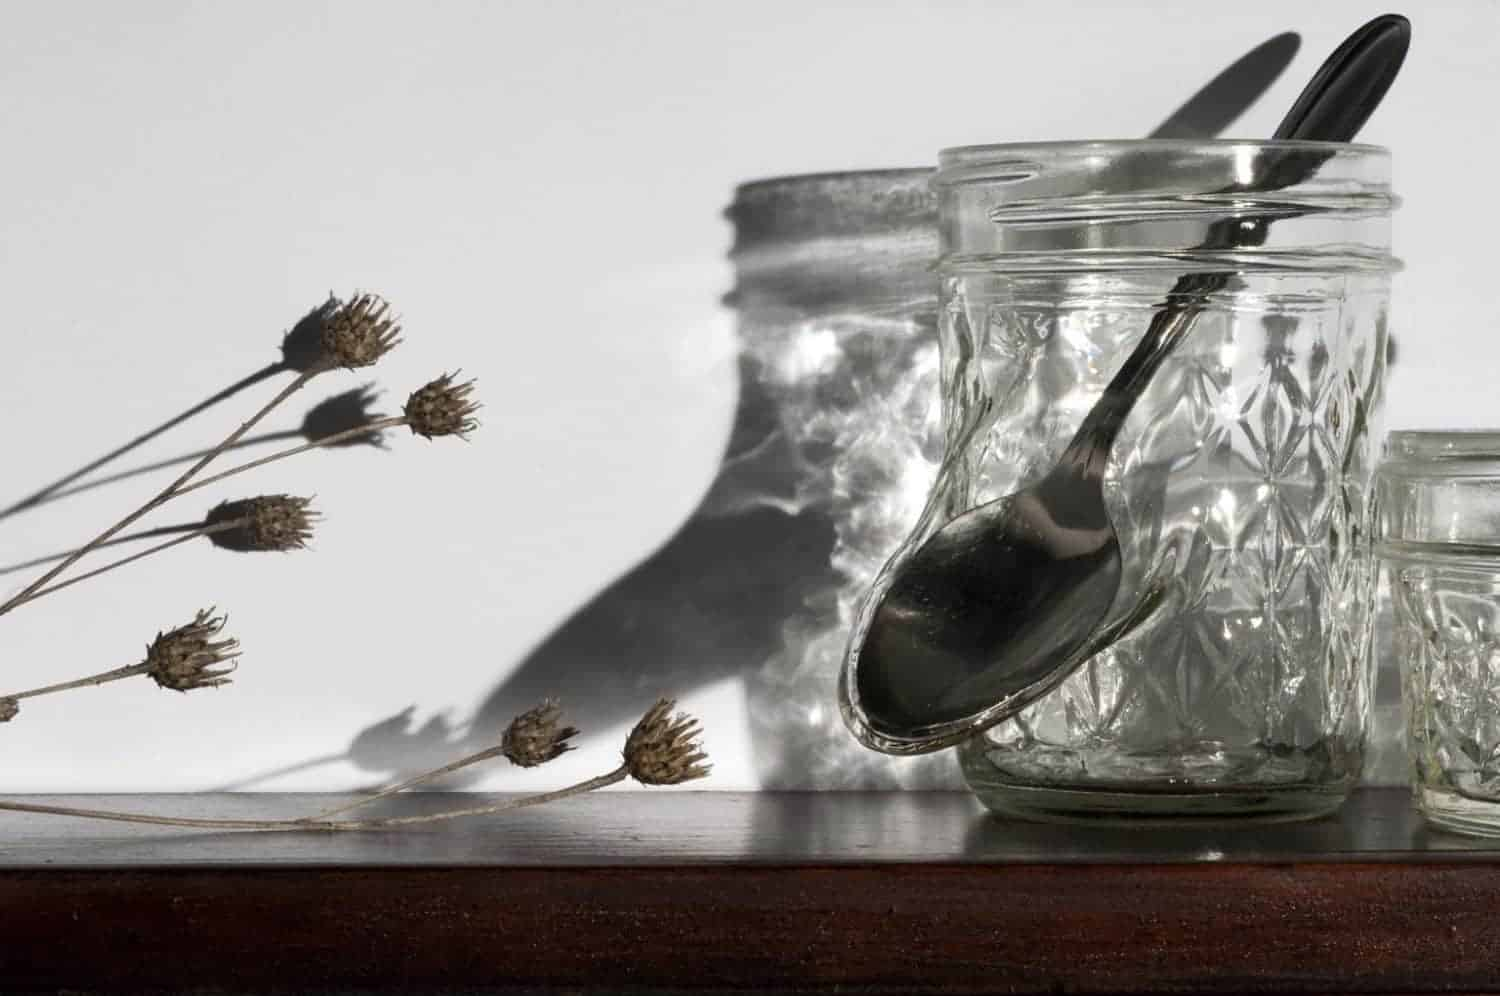 """""""What's good for the goose is good for the gander,"""" Jelly jars, cutlery, dried flowers, wood frame, 22.5 x 29 x 4 inches, photo credit: Elizabeth Torgerson-Lamark"""